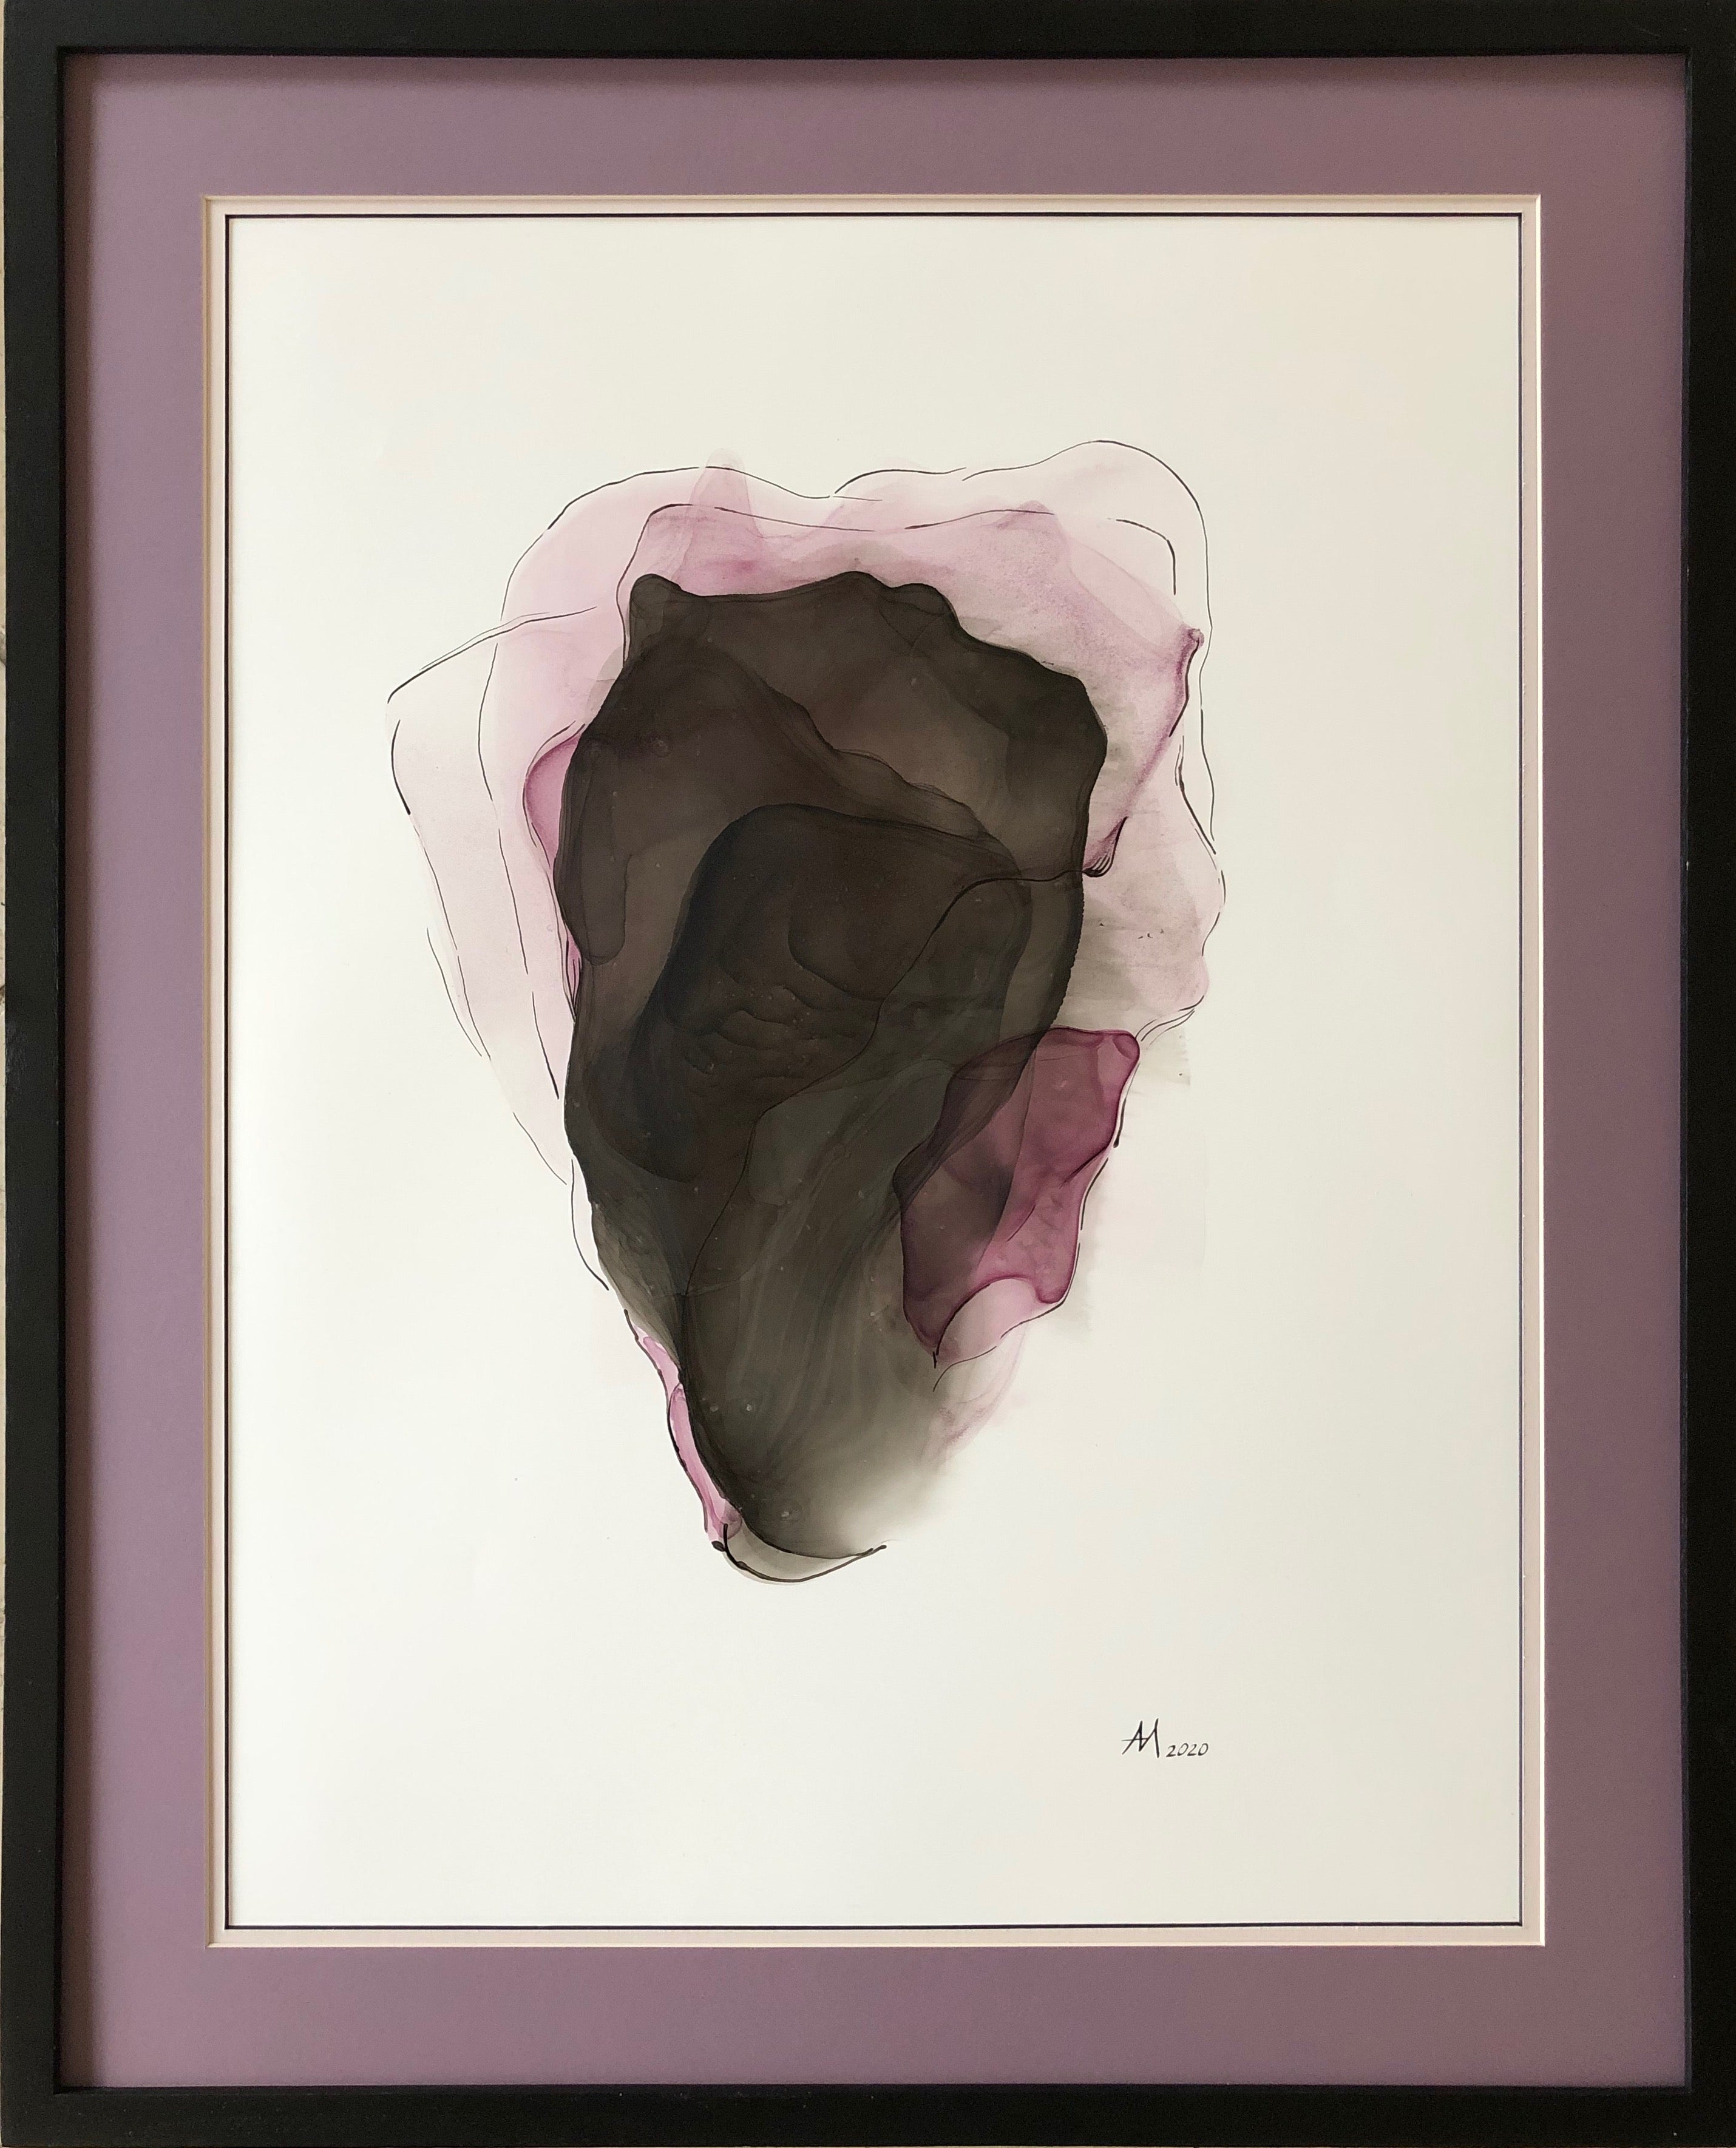 Iris-abstract painting, made in violet, black, beige, pale pink, rose color